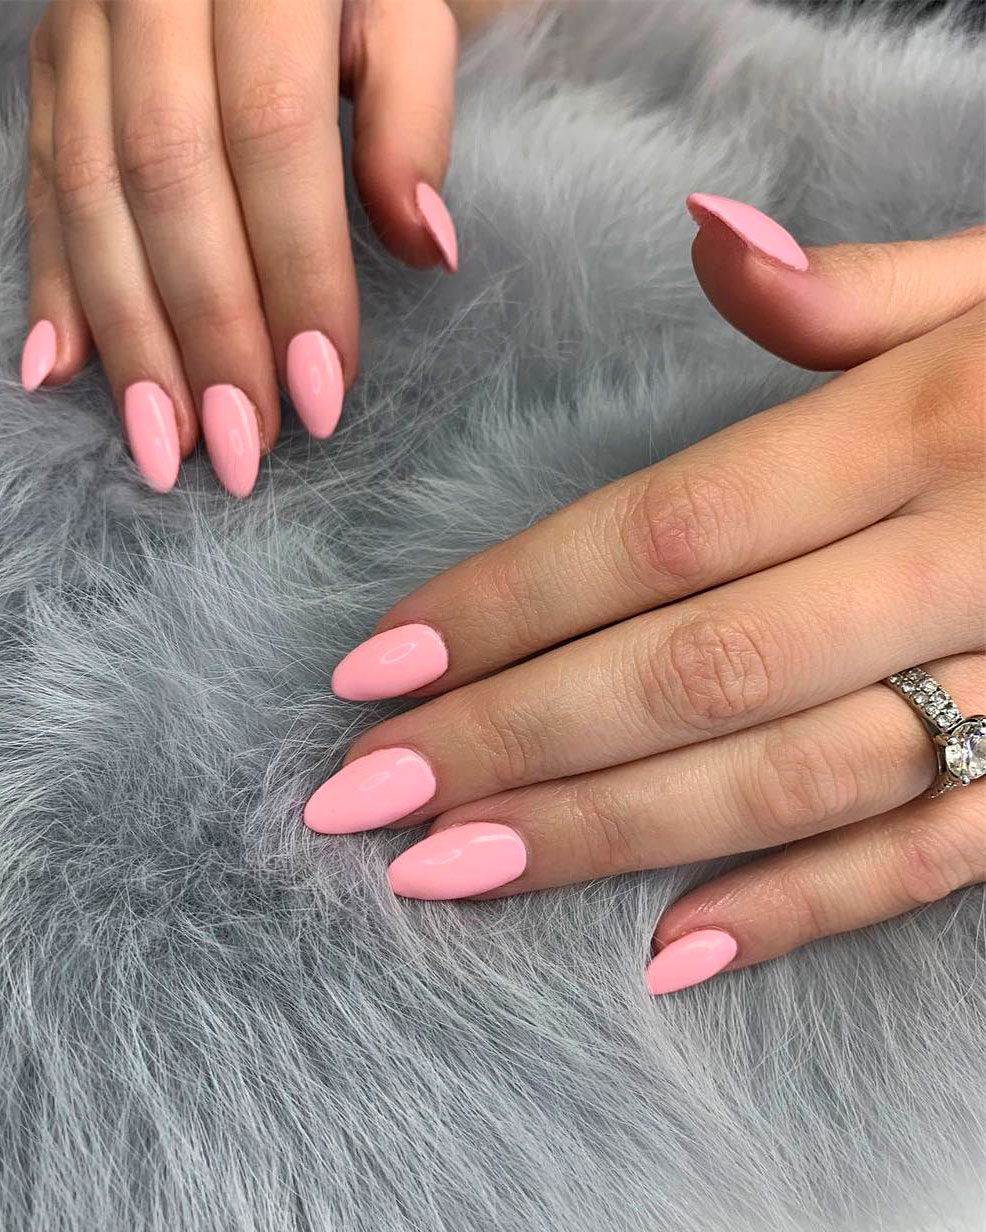 Cute Baby Pink Almond Nails Ideas In 2019 Almond Shape Nails Baby Pink Nails Pink Nails